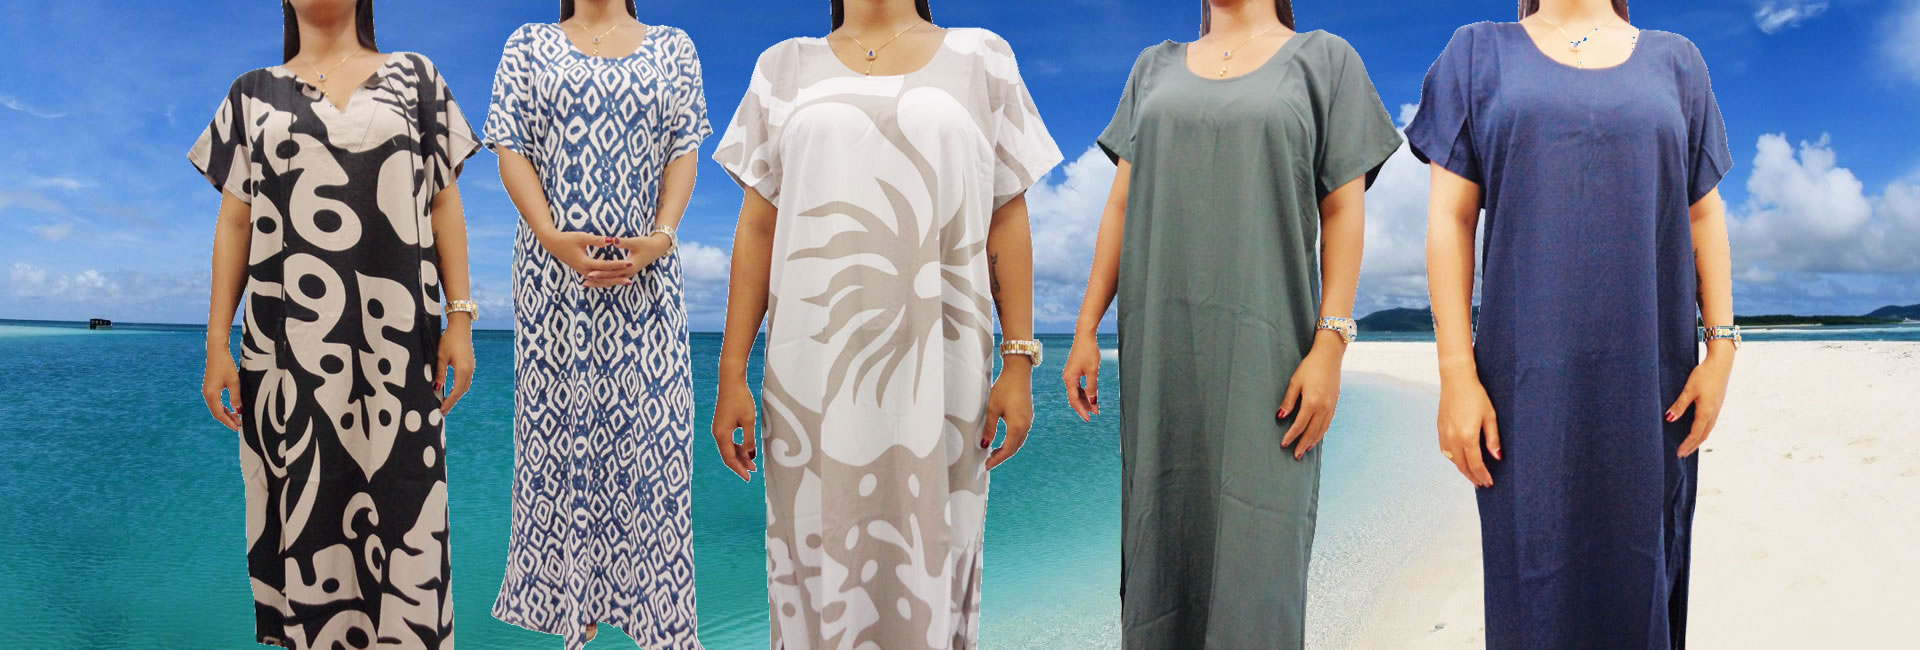 resort wear bali